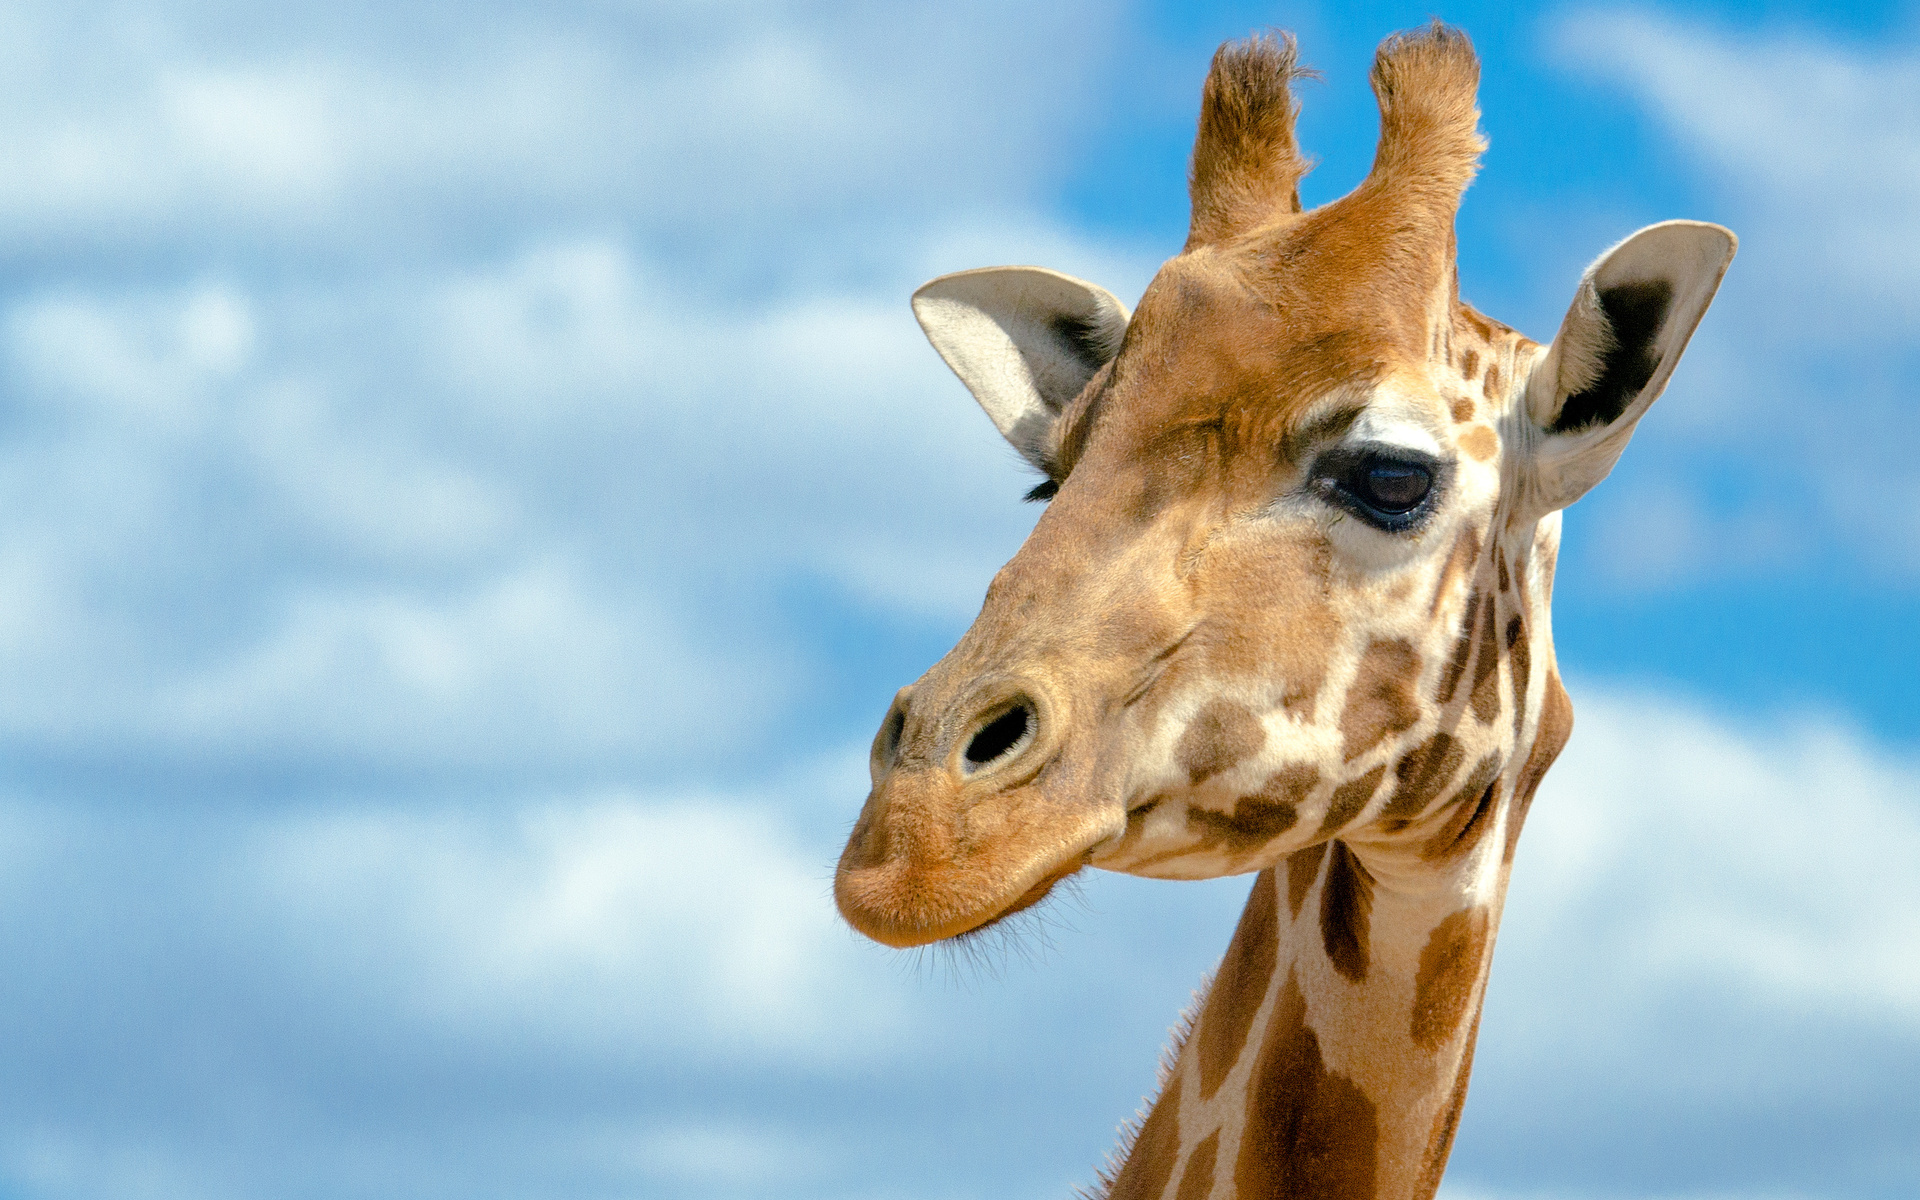 Giraffe Wallpaper 6